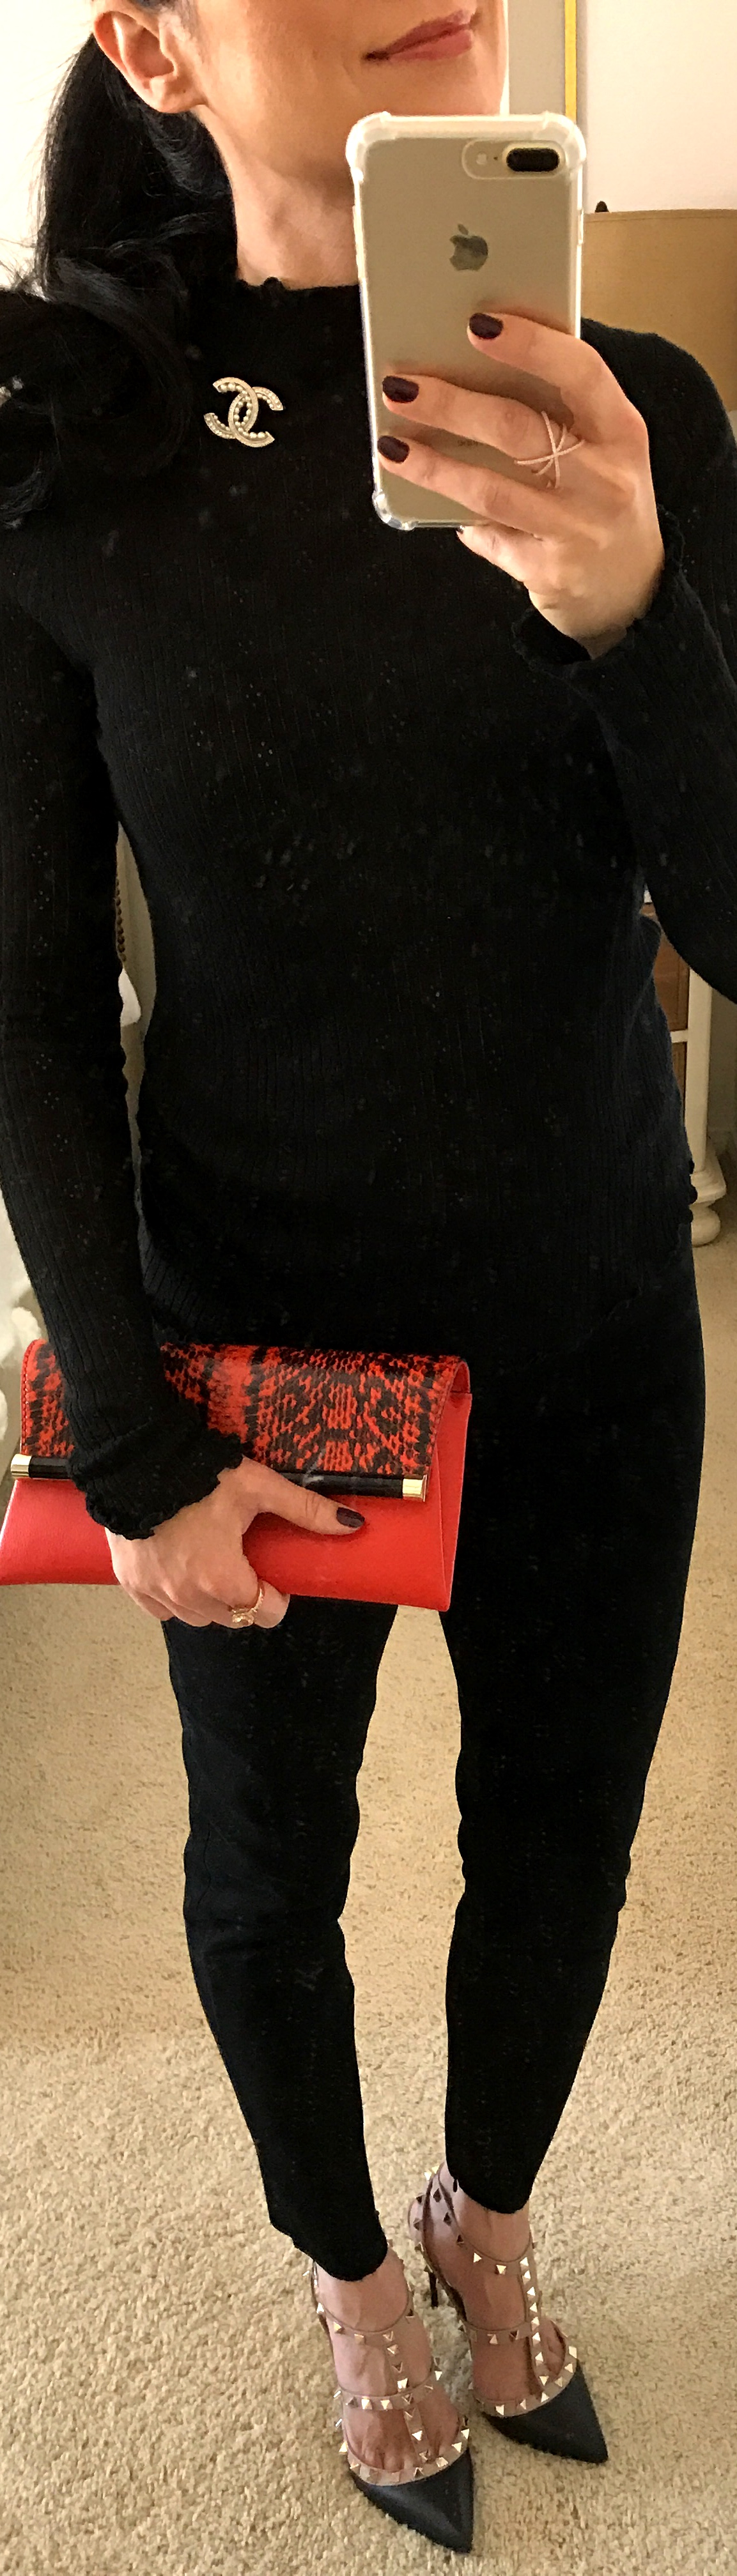 October 18th Faux Suede Trousers by Zara, Clutch by DVF and CHANEL Broach